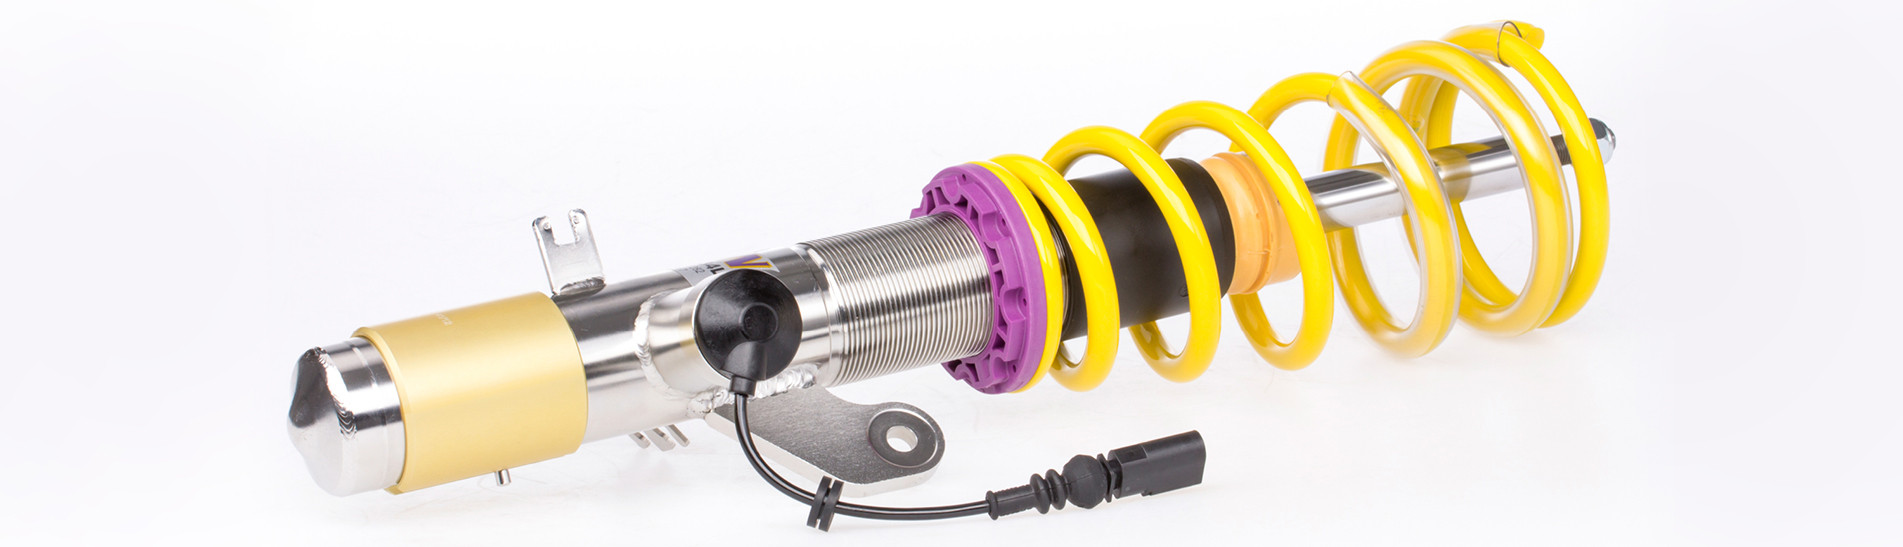 KW Coilovers, street and racing suspension   KW suspensions US